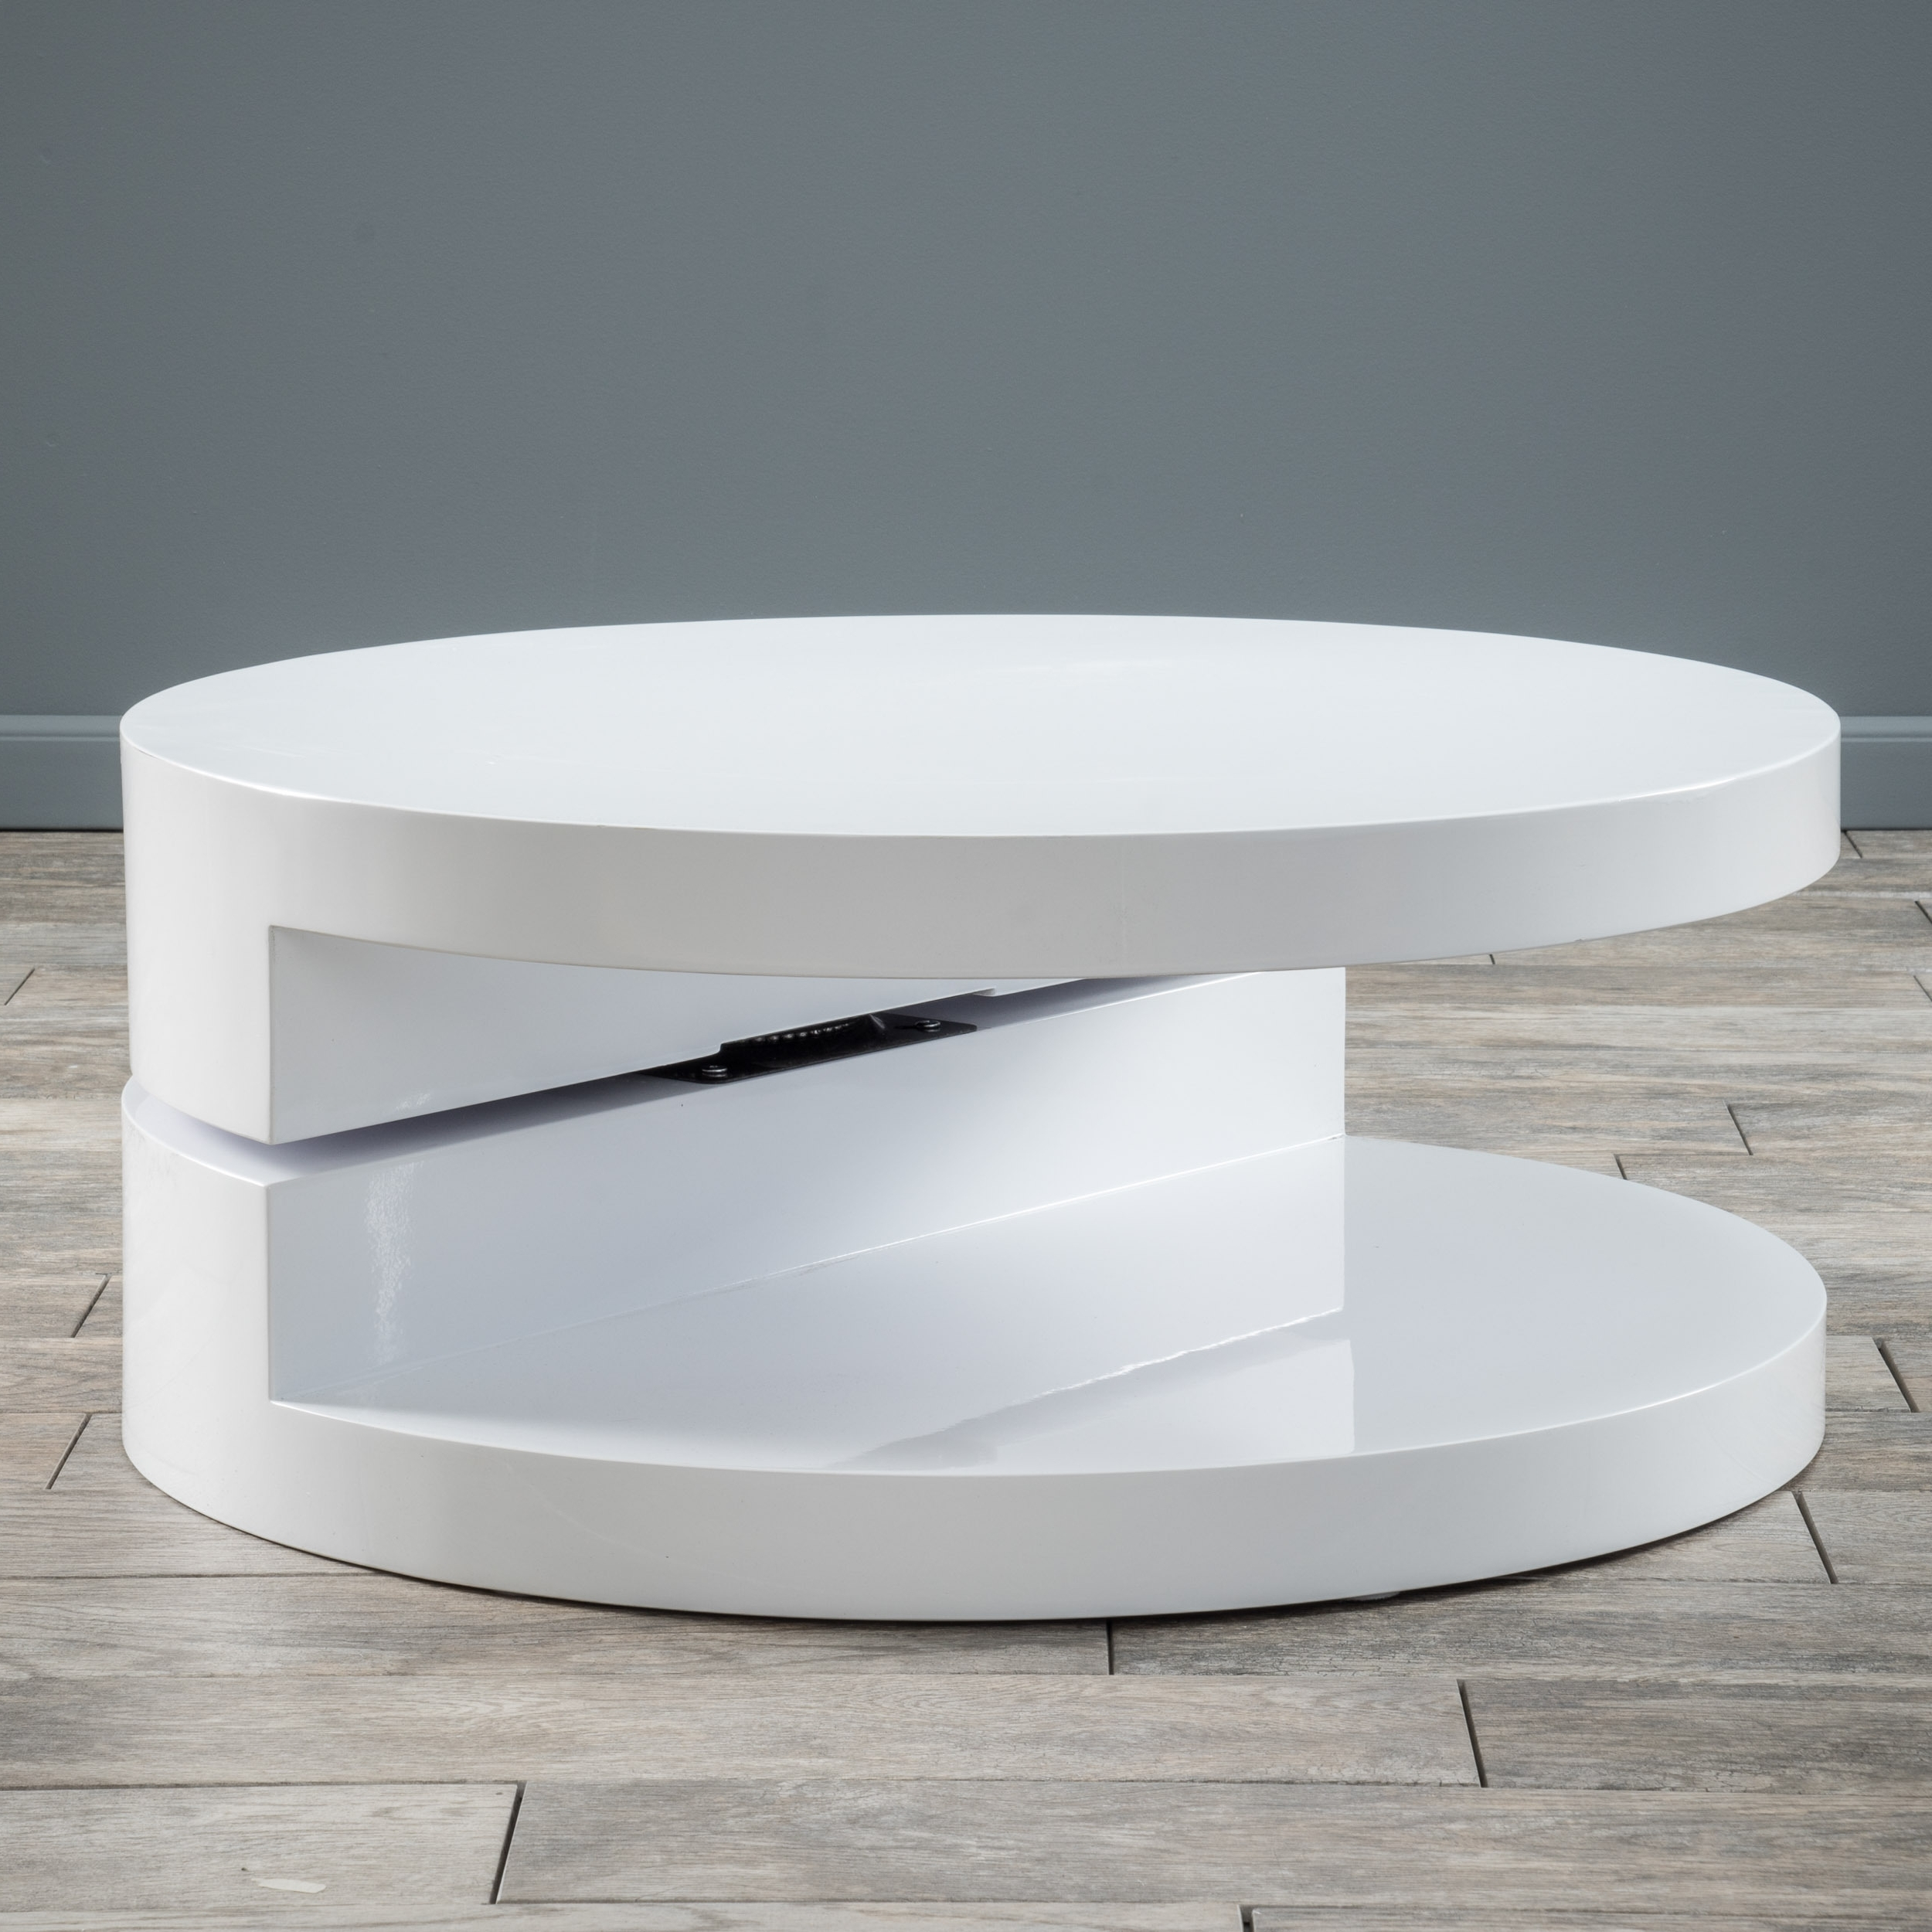 Alluring White Round Table Wood Material Glossy Finish Coffee Table With Fashionable Spin Rotating Coffee Tables (Gallery 14 of 20)